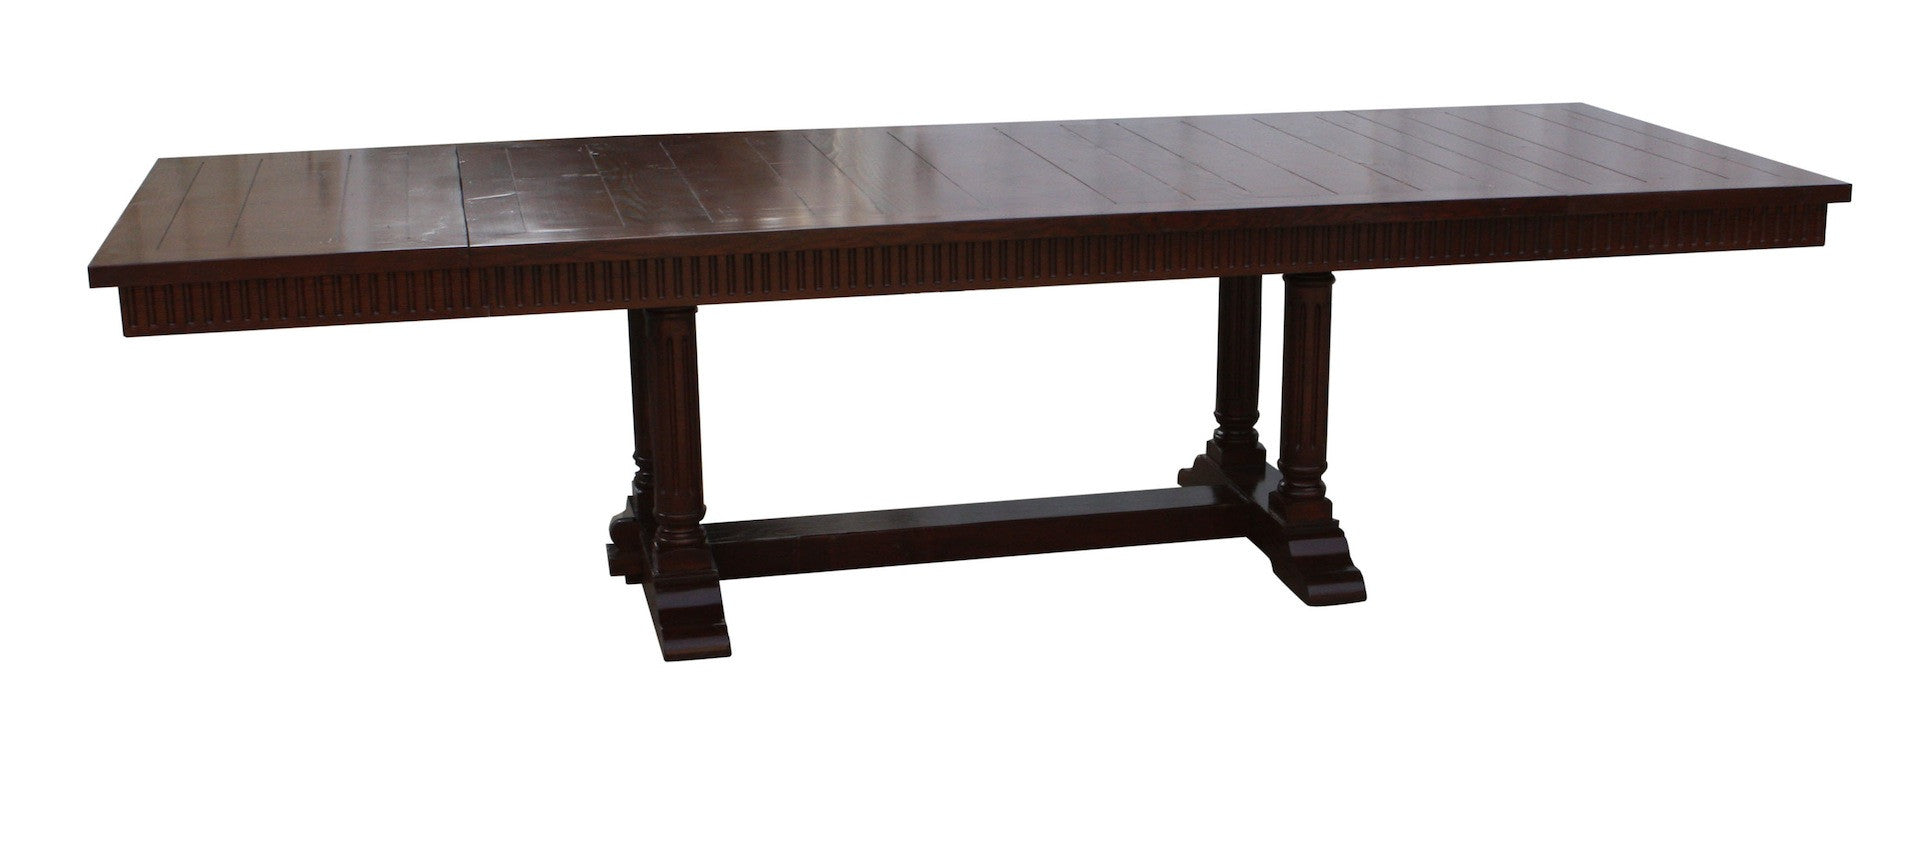 Cambria Rustic Extension Trestle Dining Table Built In Reclaimed